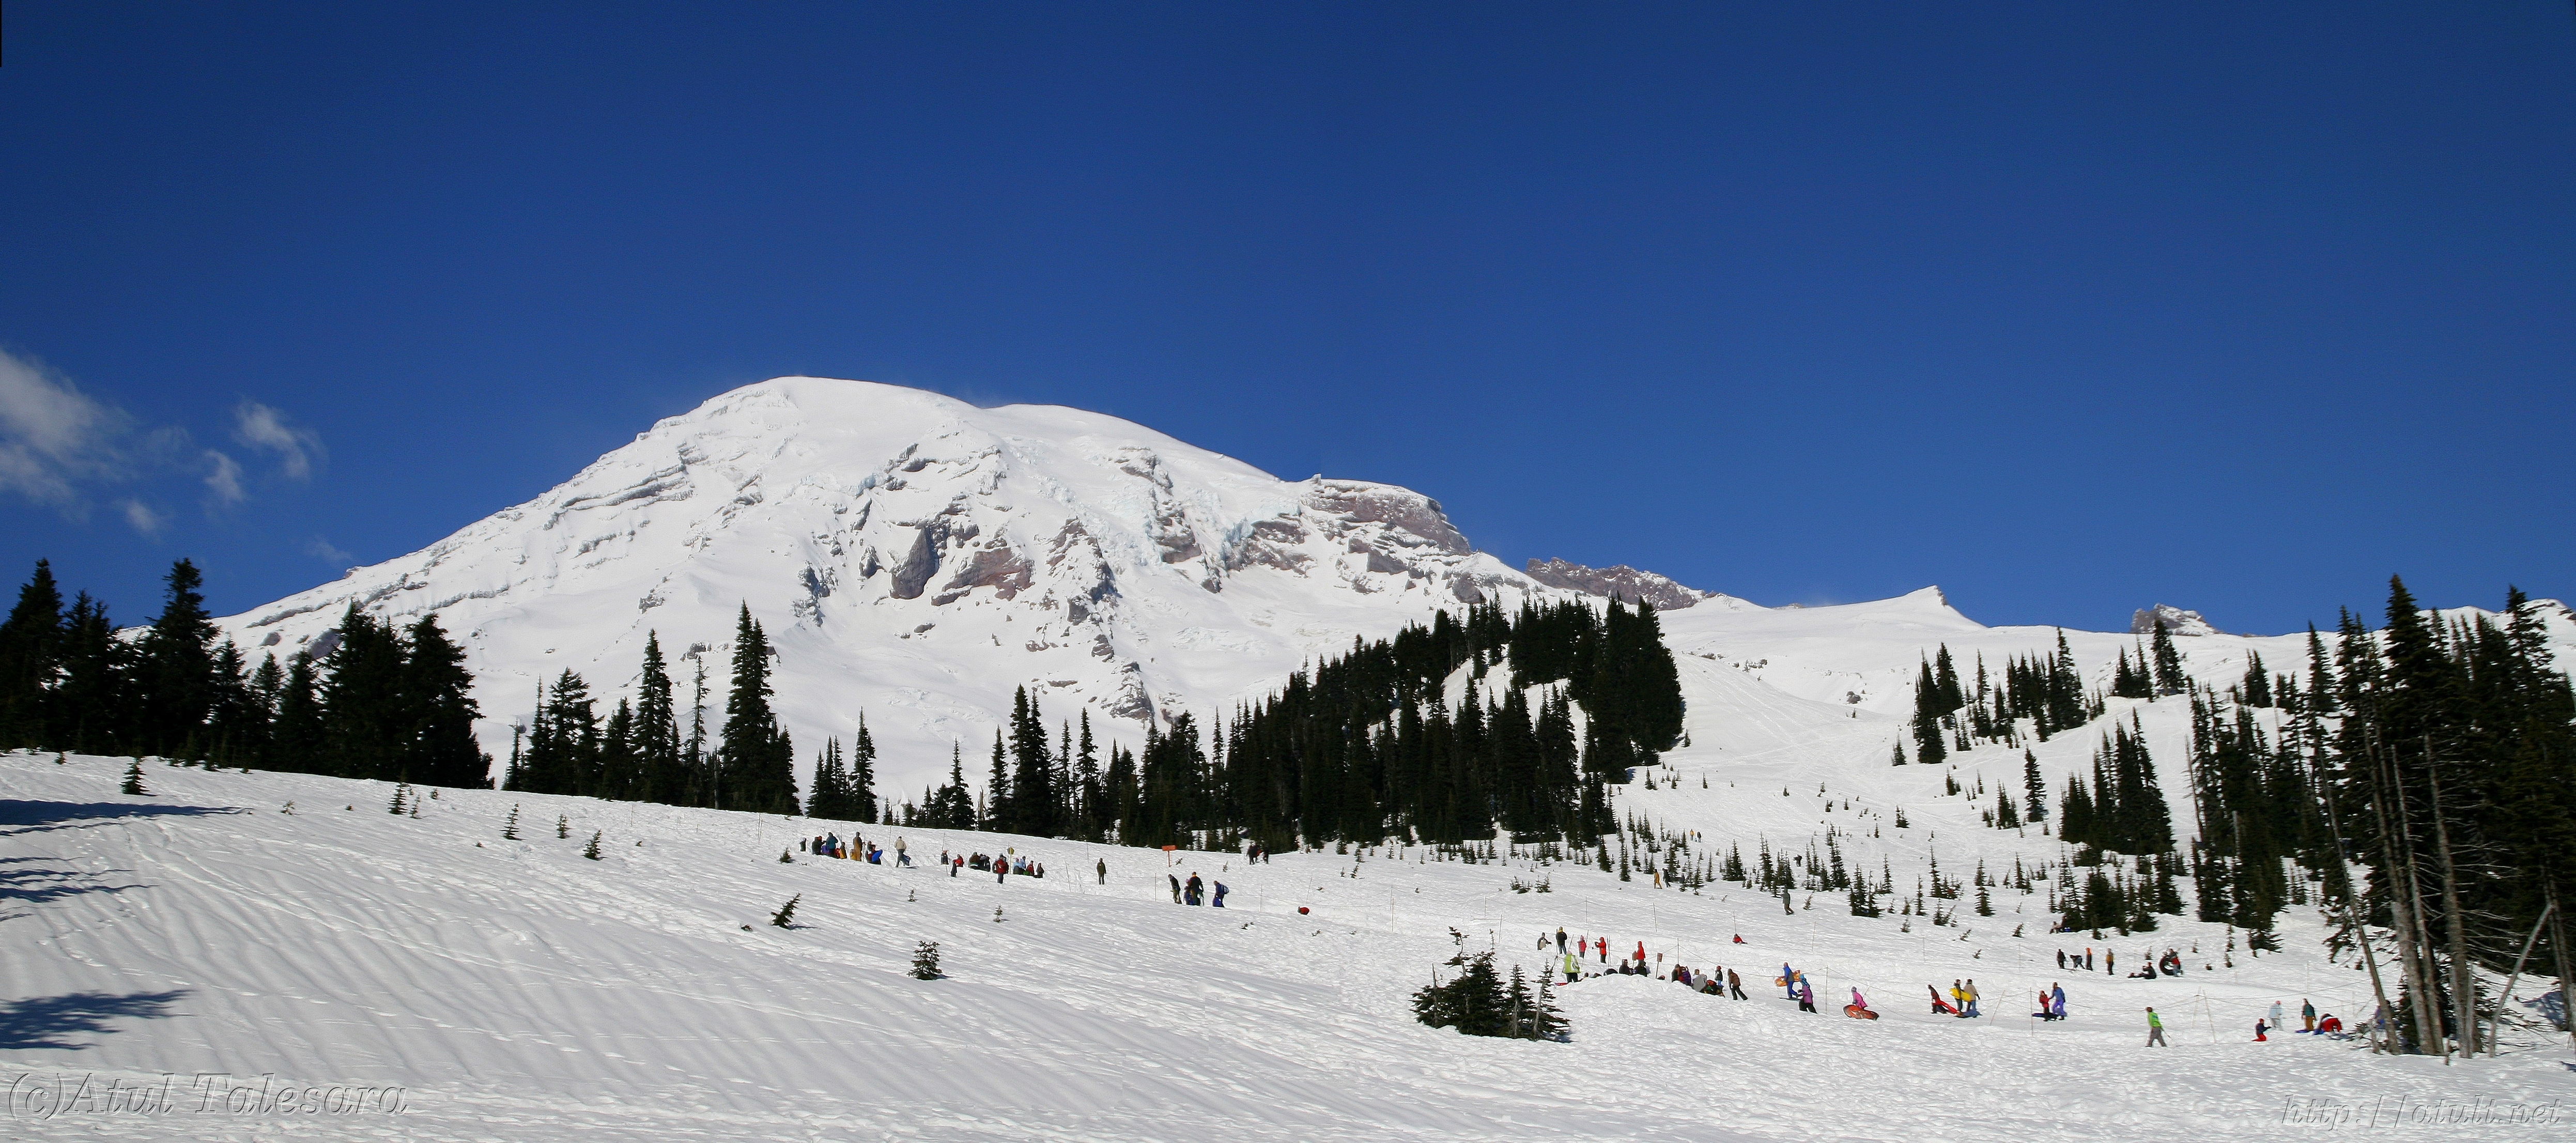 hindu singles in mount rainier As a decimal by moving the decimal point two places to the left (which is equivalent to  calculate the absolute and.